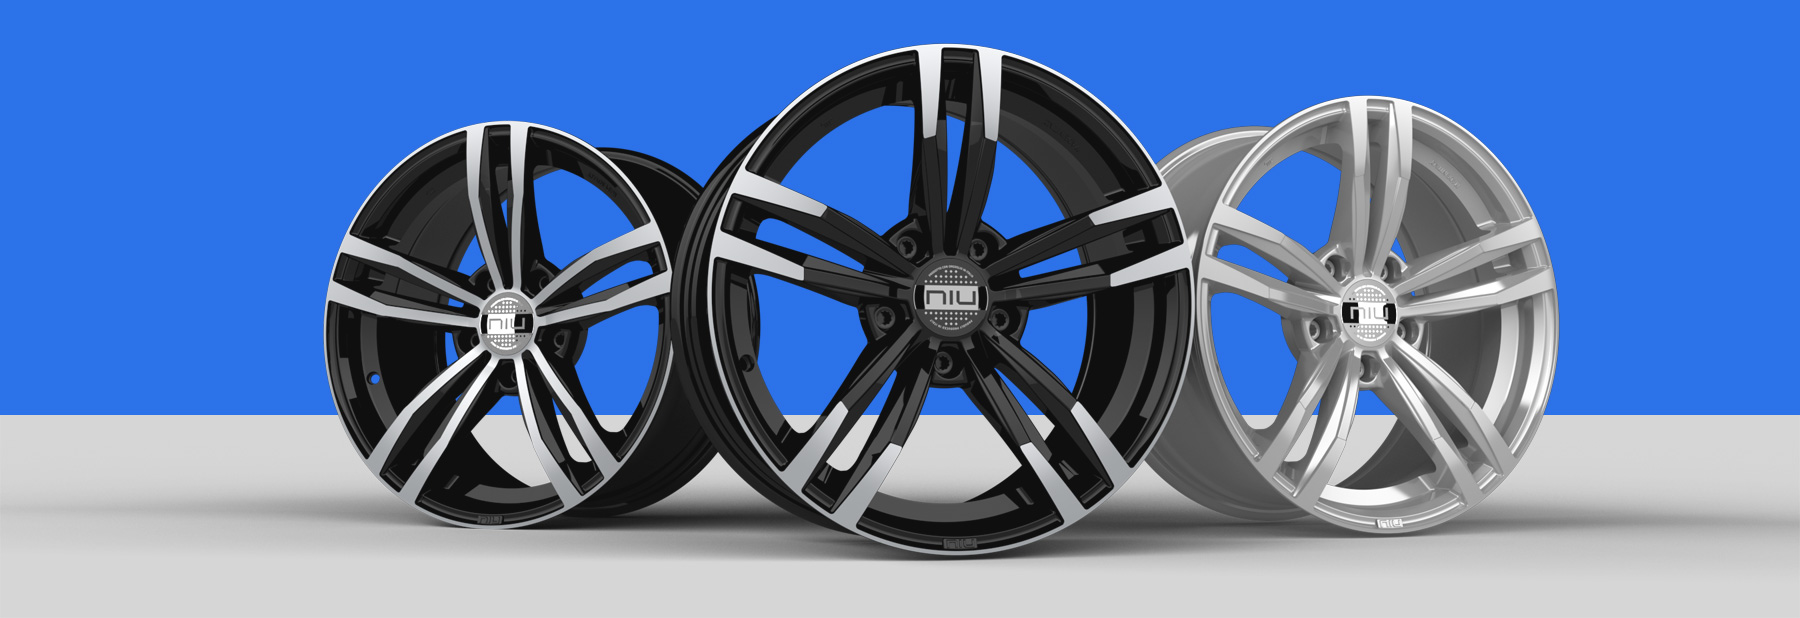 NIU Wheels S